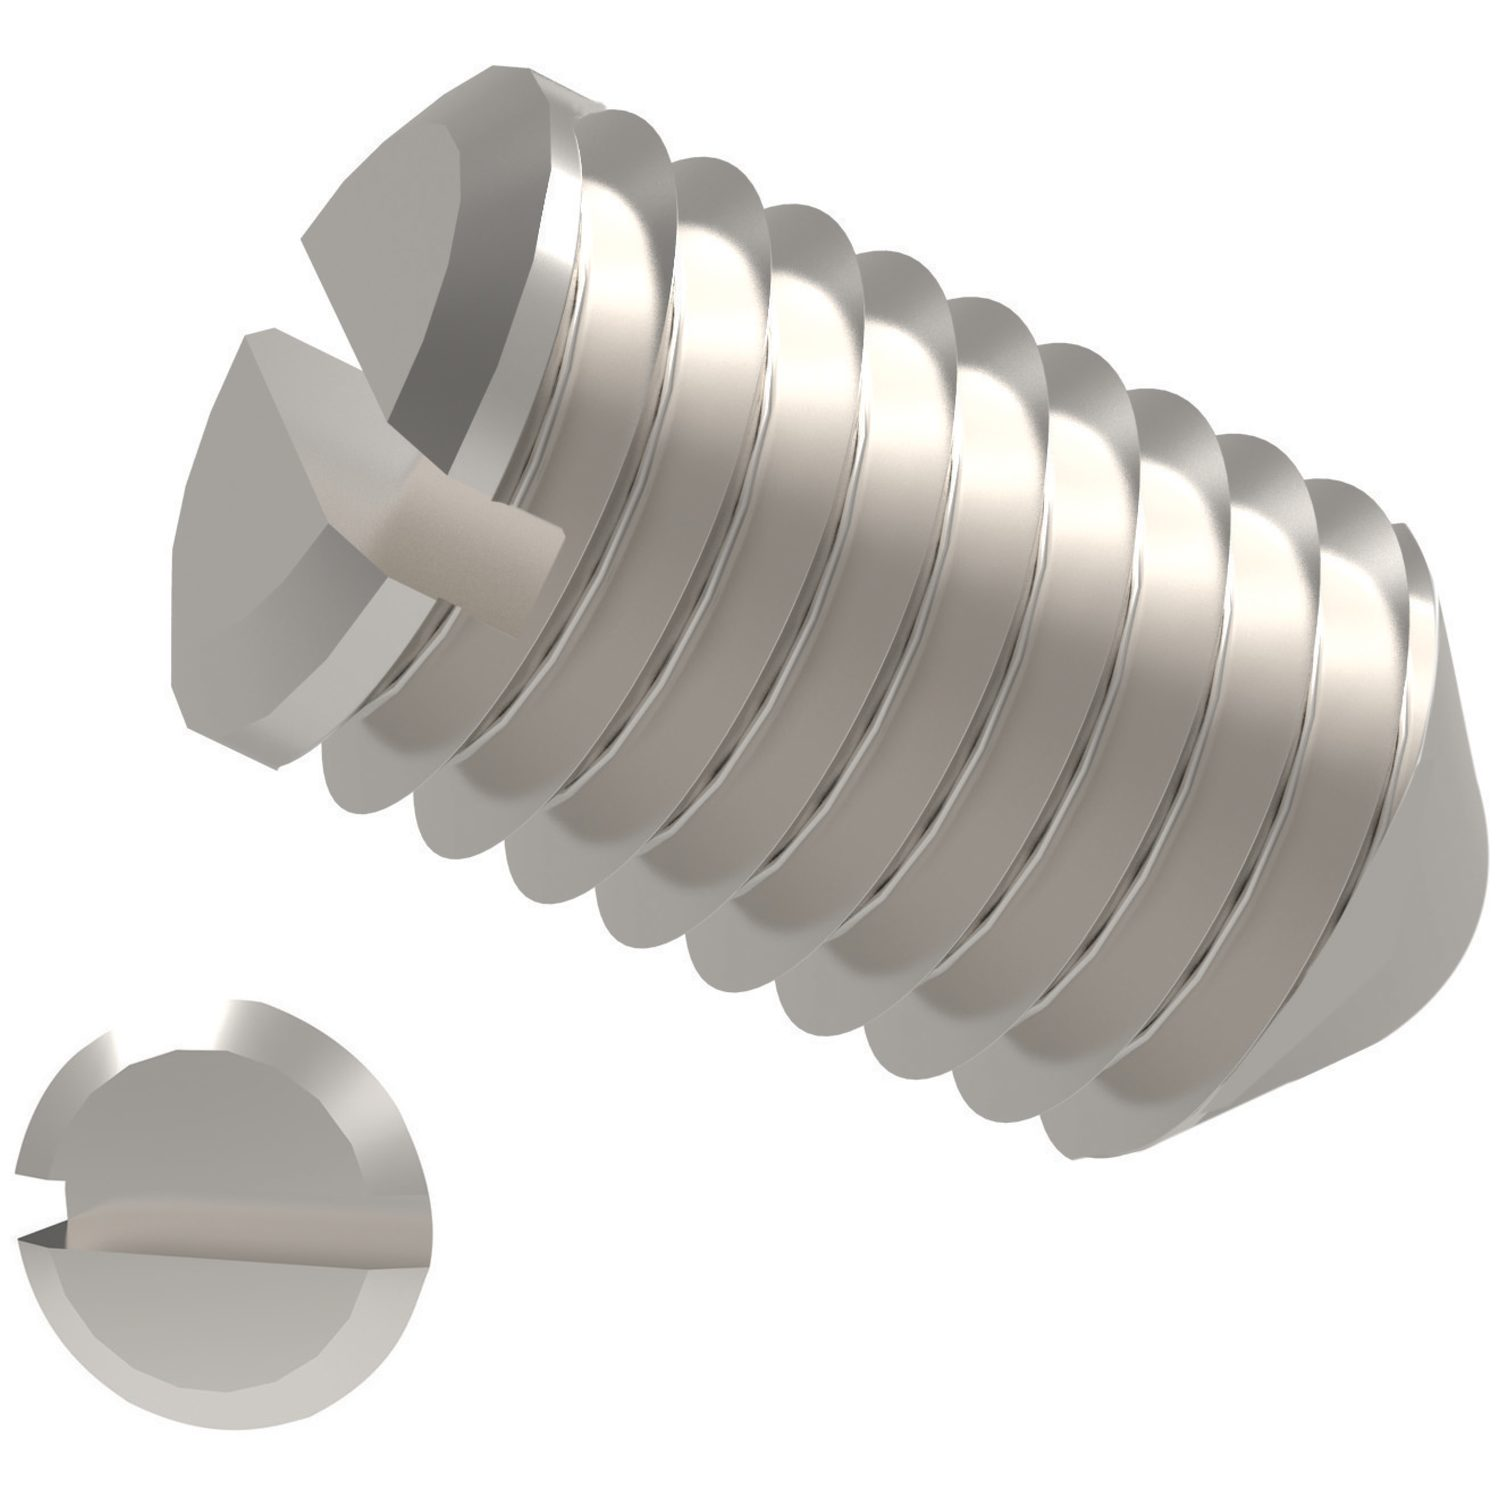 Slotted Set Screws Cone Point Stainless Steel A4. To DIN 553, cone point.